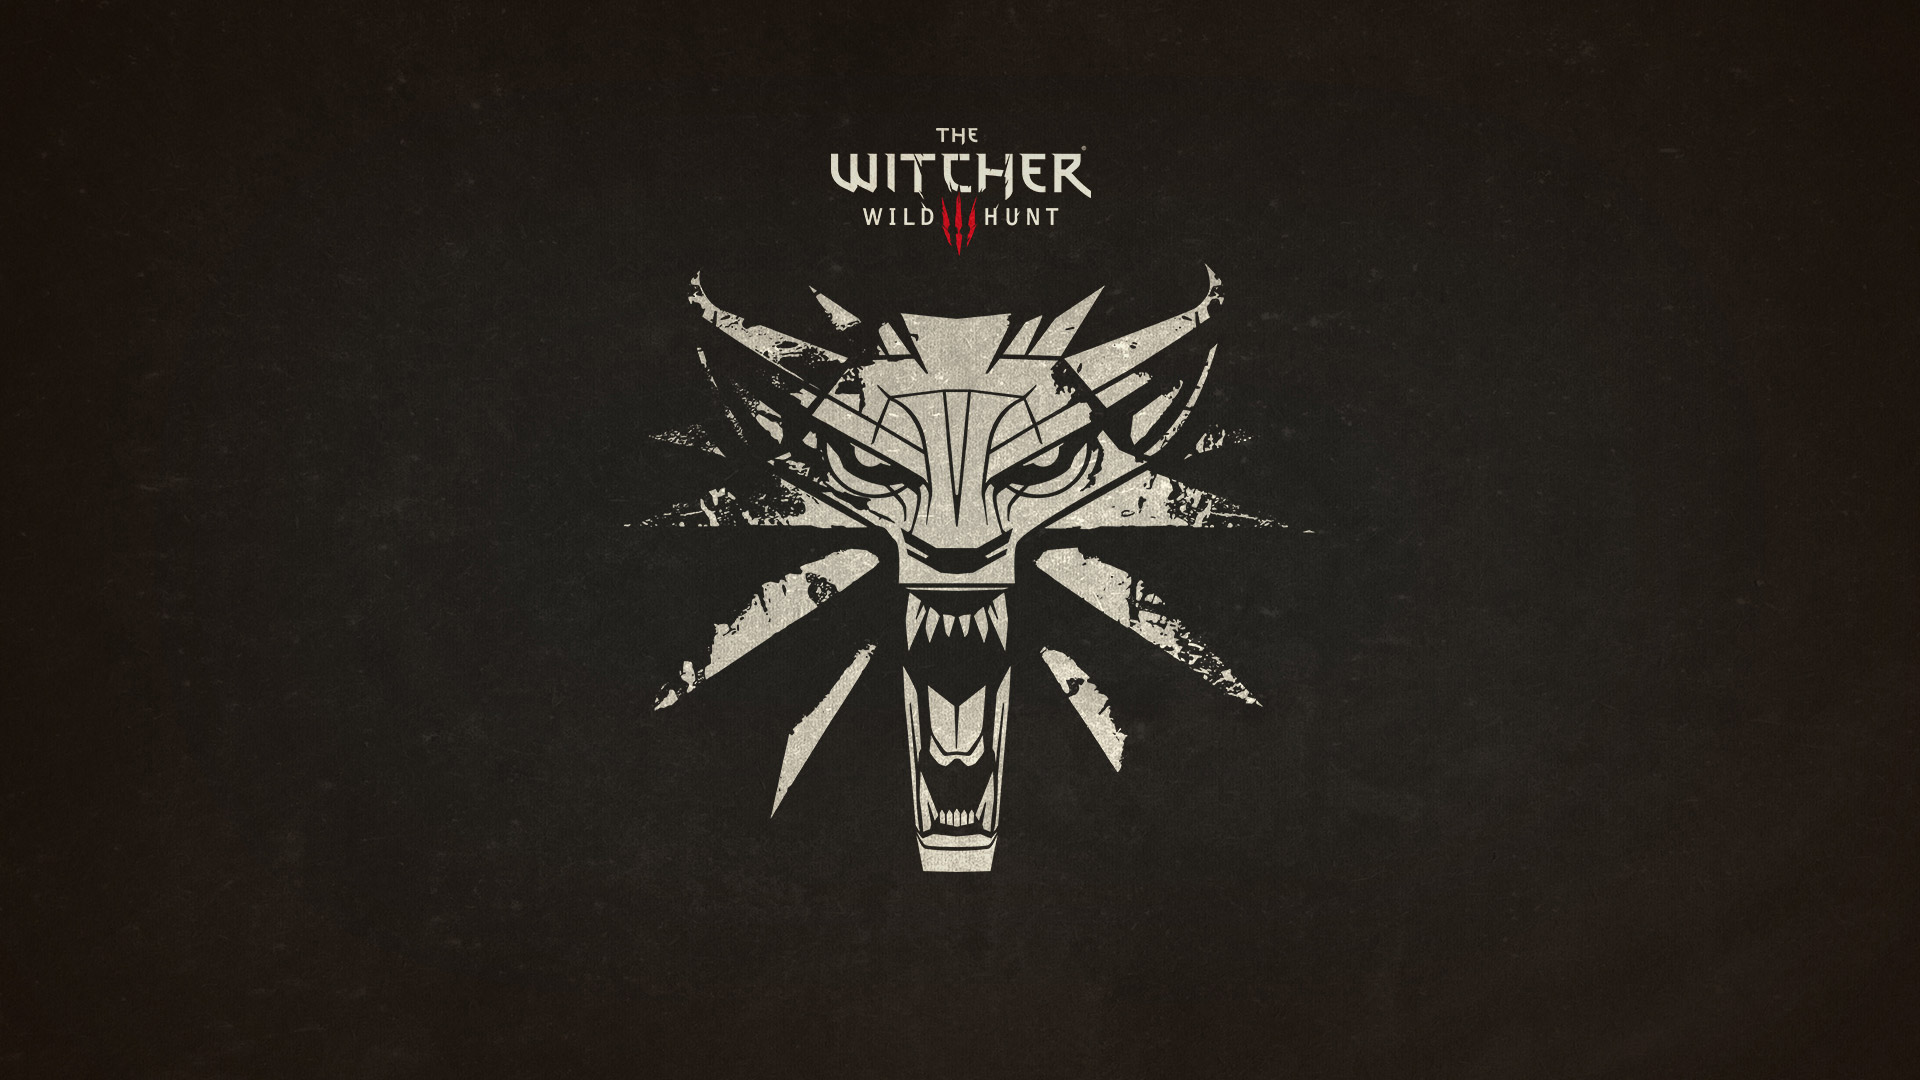 The Witcher 3 Wallpaper in 1920x1080 1920x1080